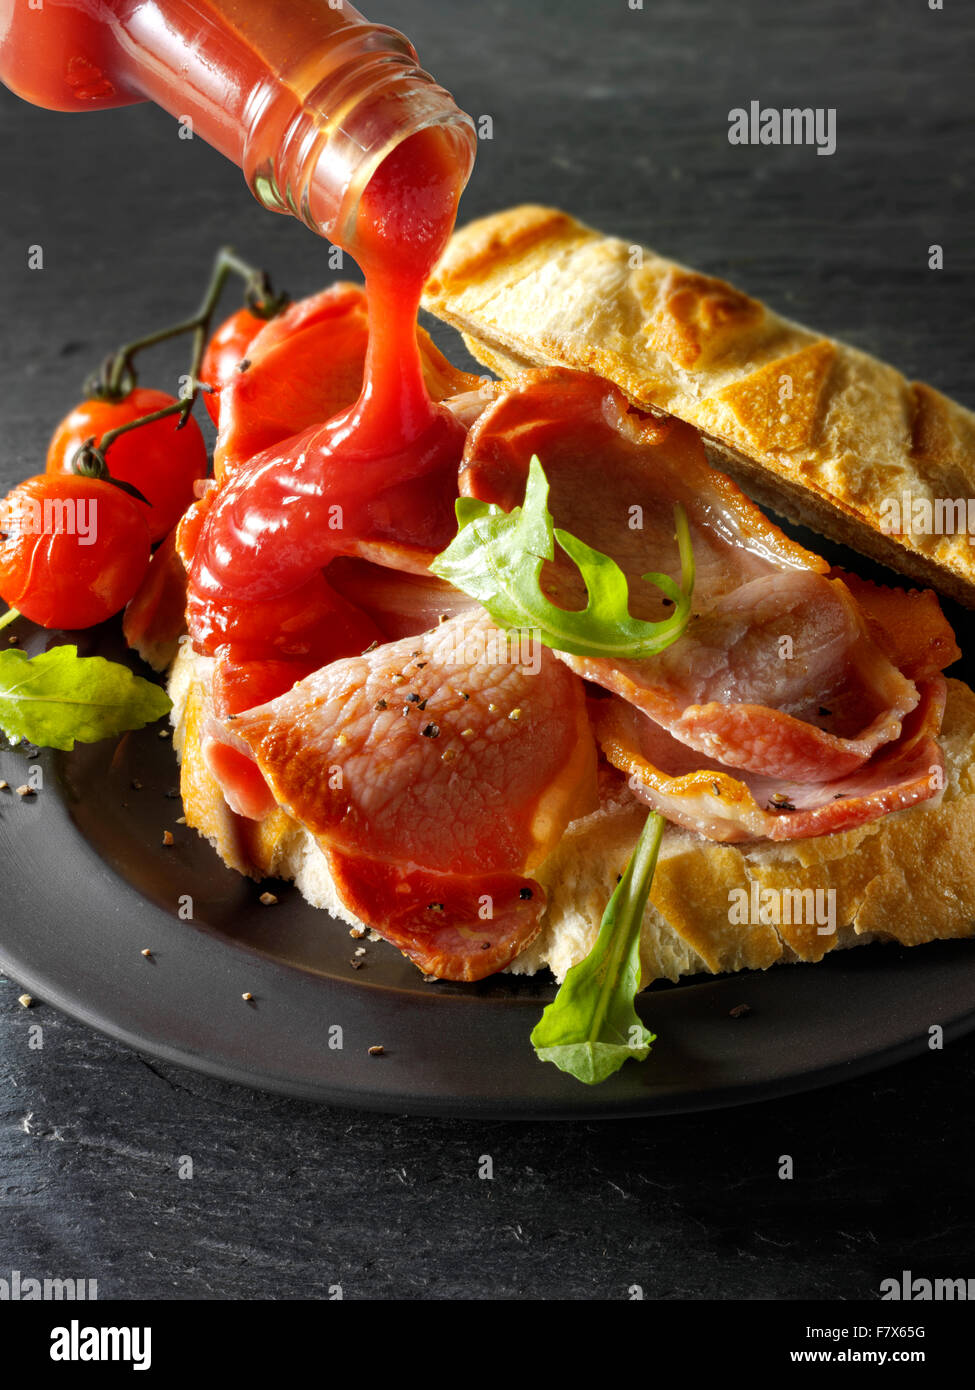 Prepared bacon sandwich  with tomato ketchup sandwich - Stock Image